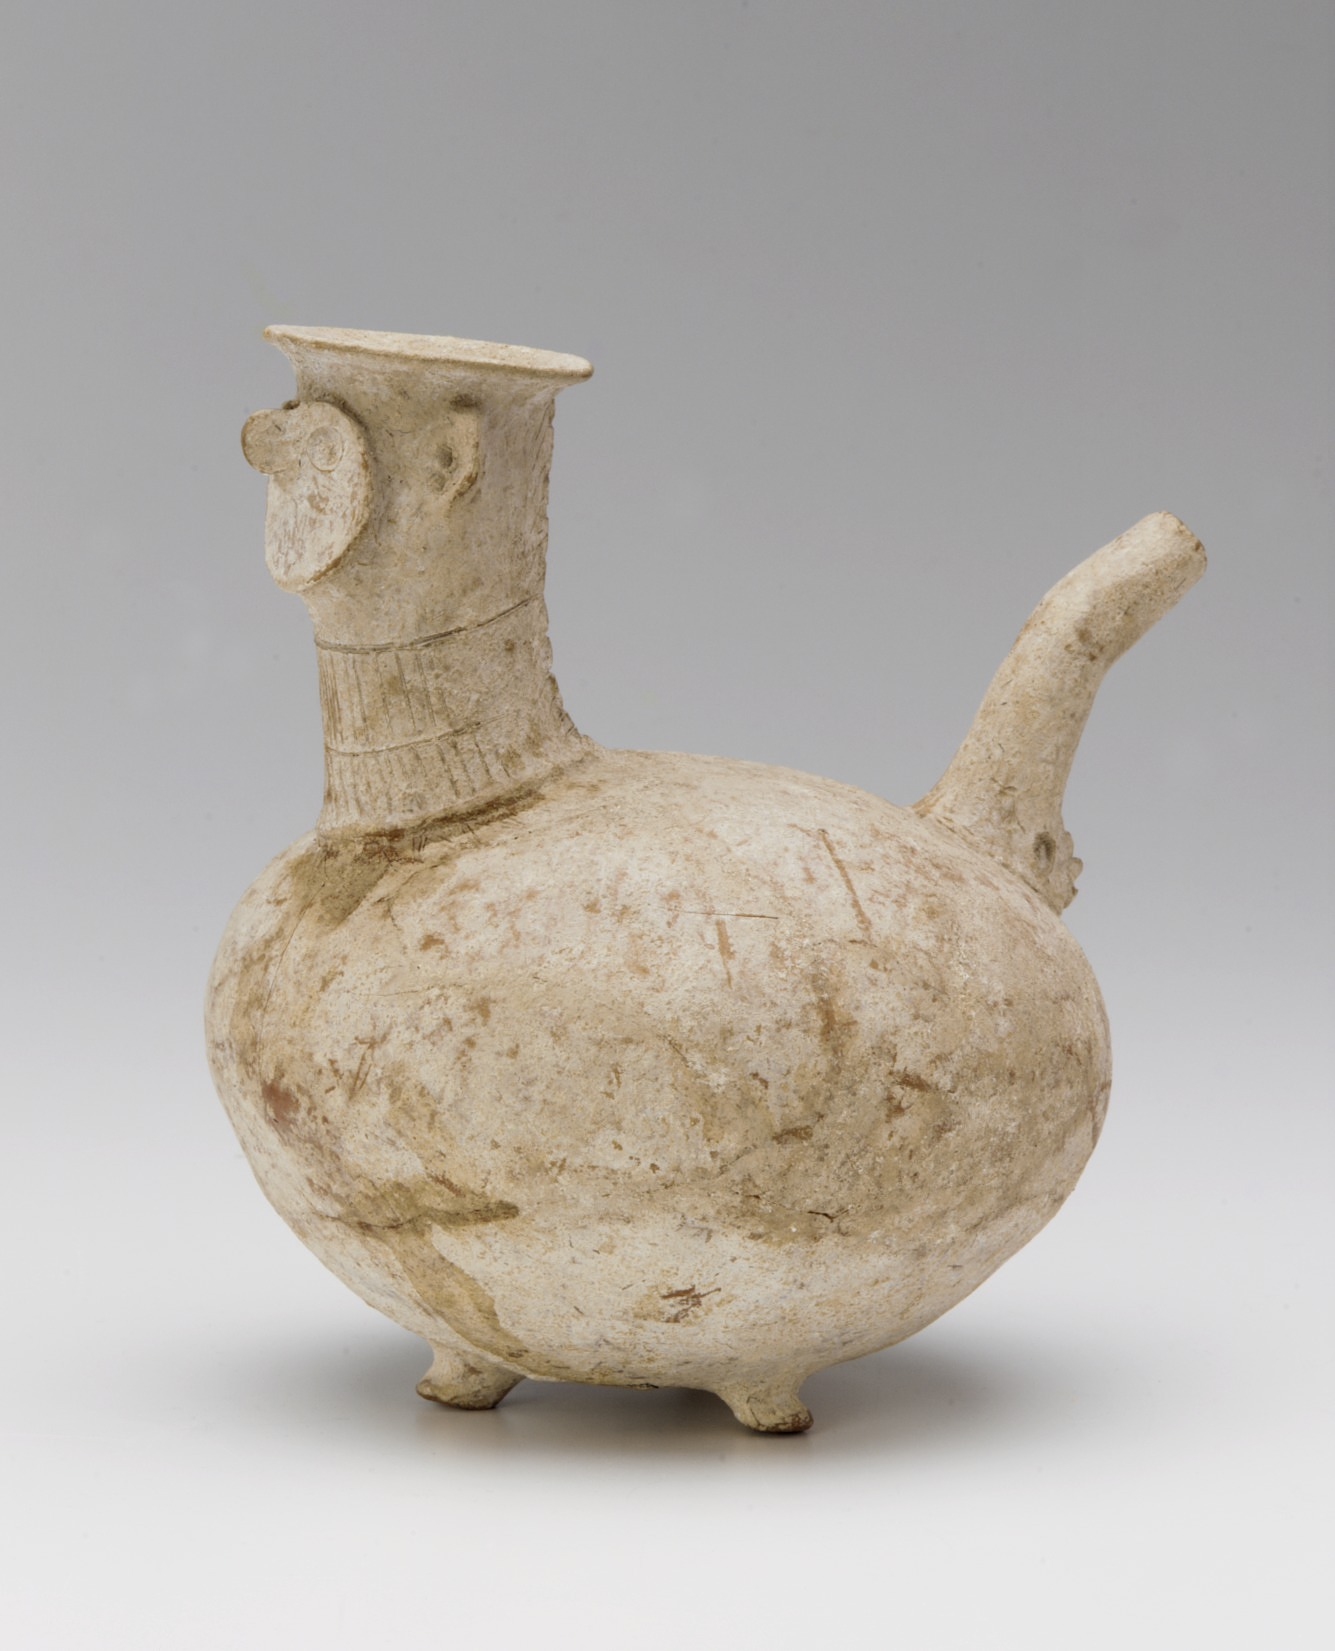 : Spouted vessel